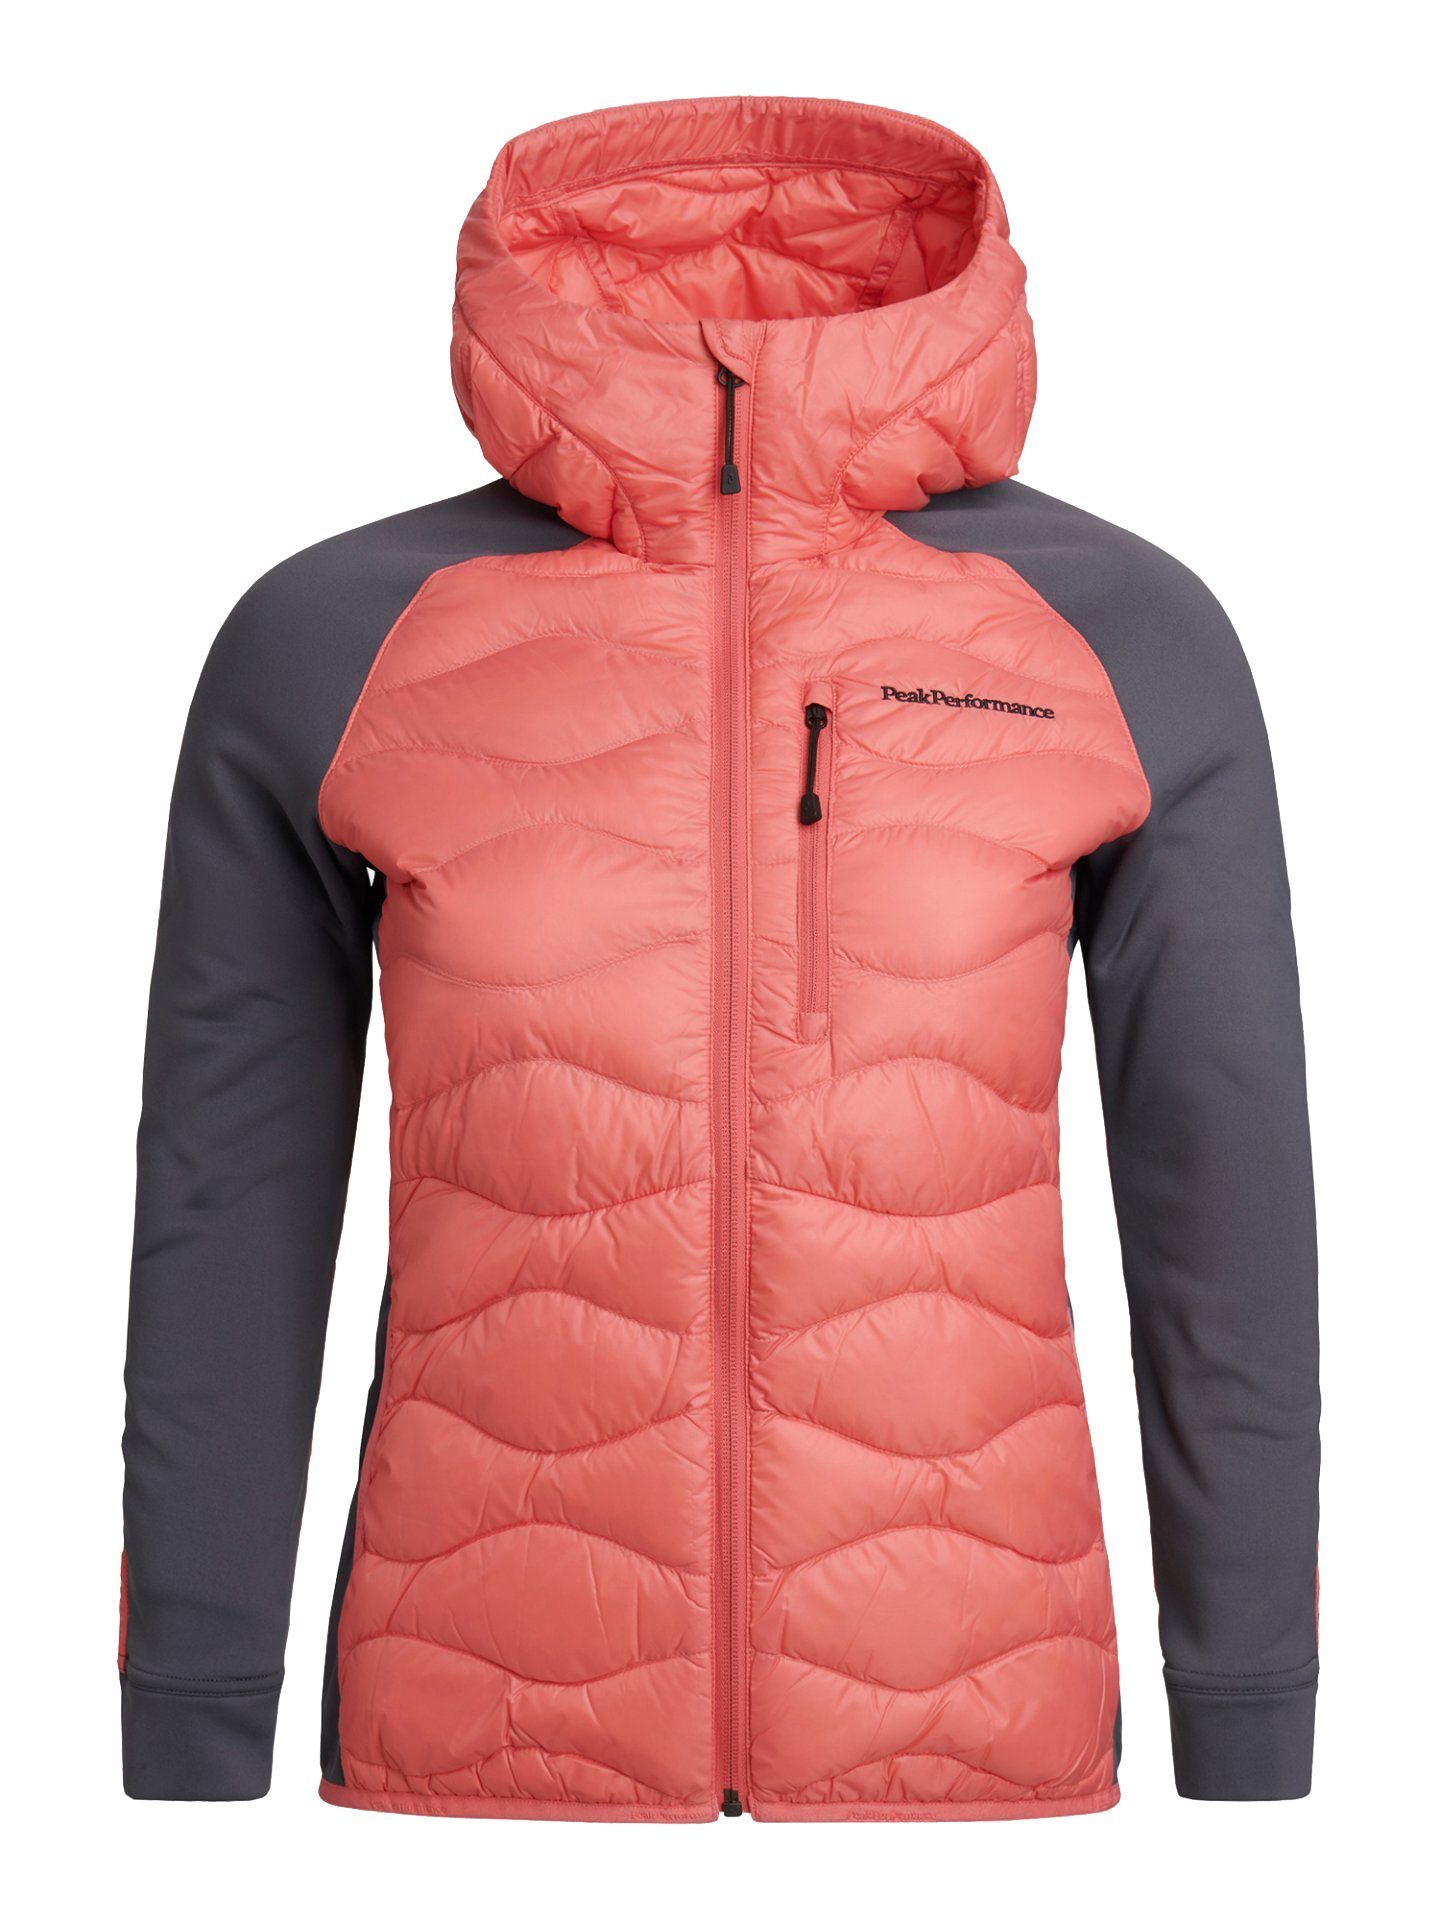 Peak Performance dames golfjack Argon Hybrid Hood alpine flower